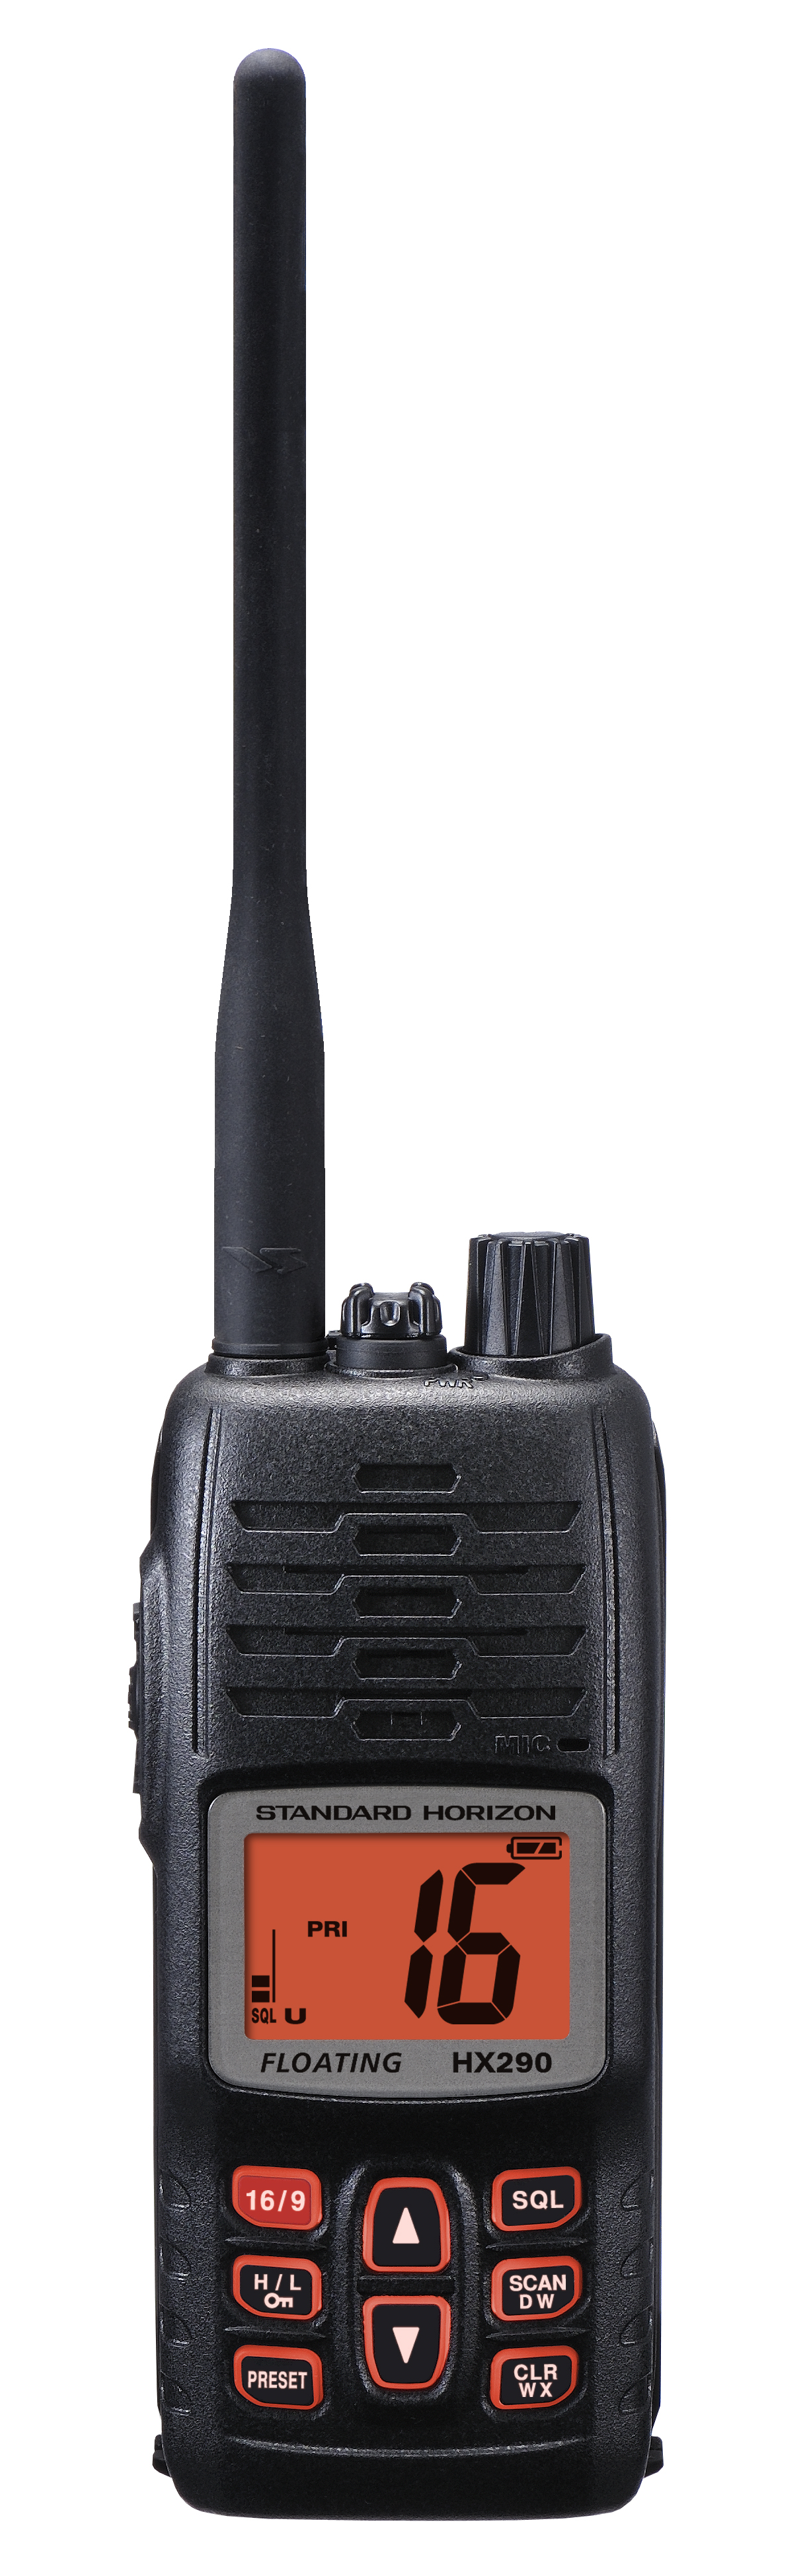 standard horizon vhf handheld radio hx290e yacht charter superyacht news. Black Bedroom Furniture Sets. Home Design Ideas